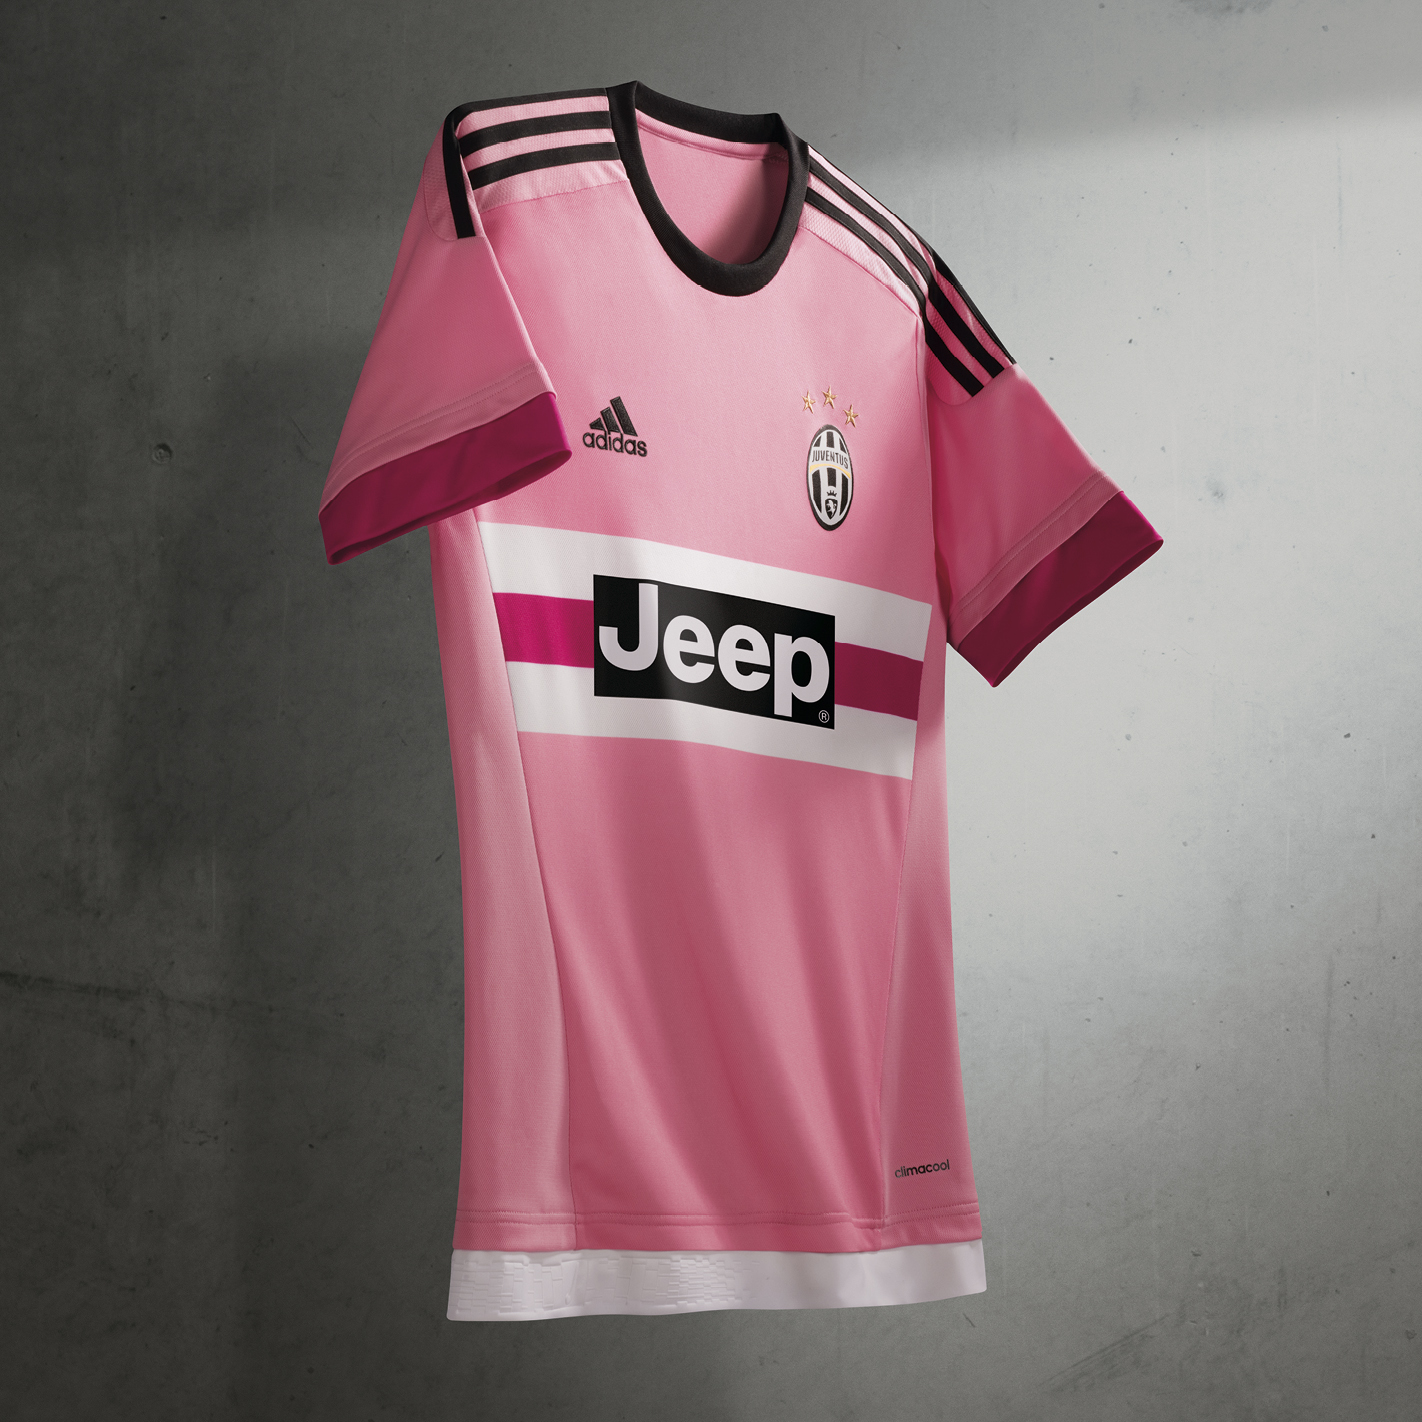 juventus seal adidas move with 2015 16 kit release soccer cleats 101 juventus seal adidas move with 2015 16